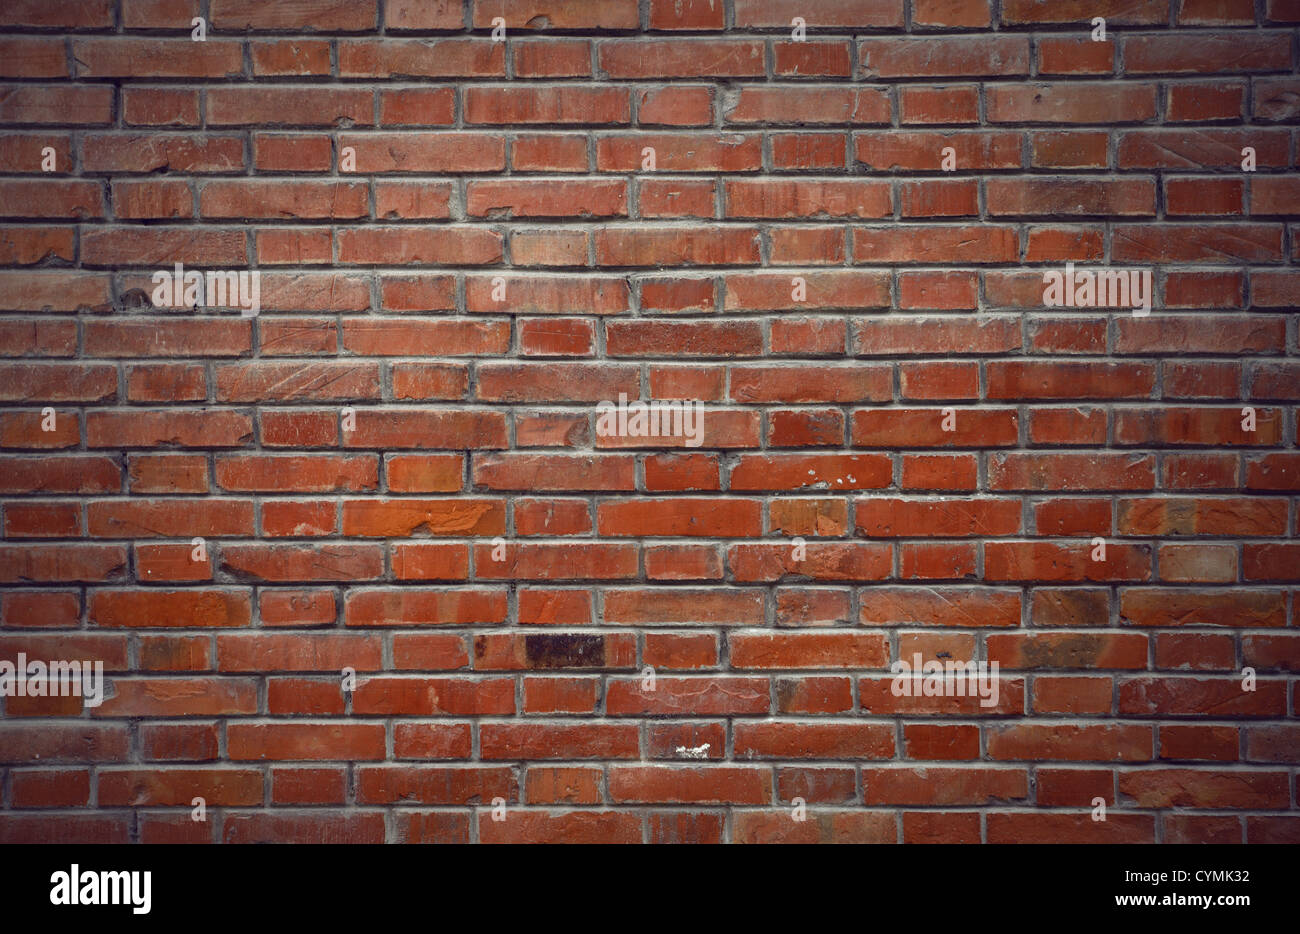 Brick wall background Photo Stock